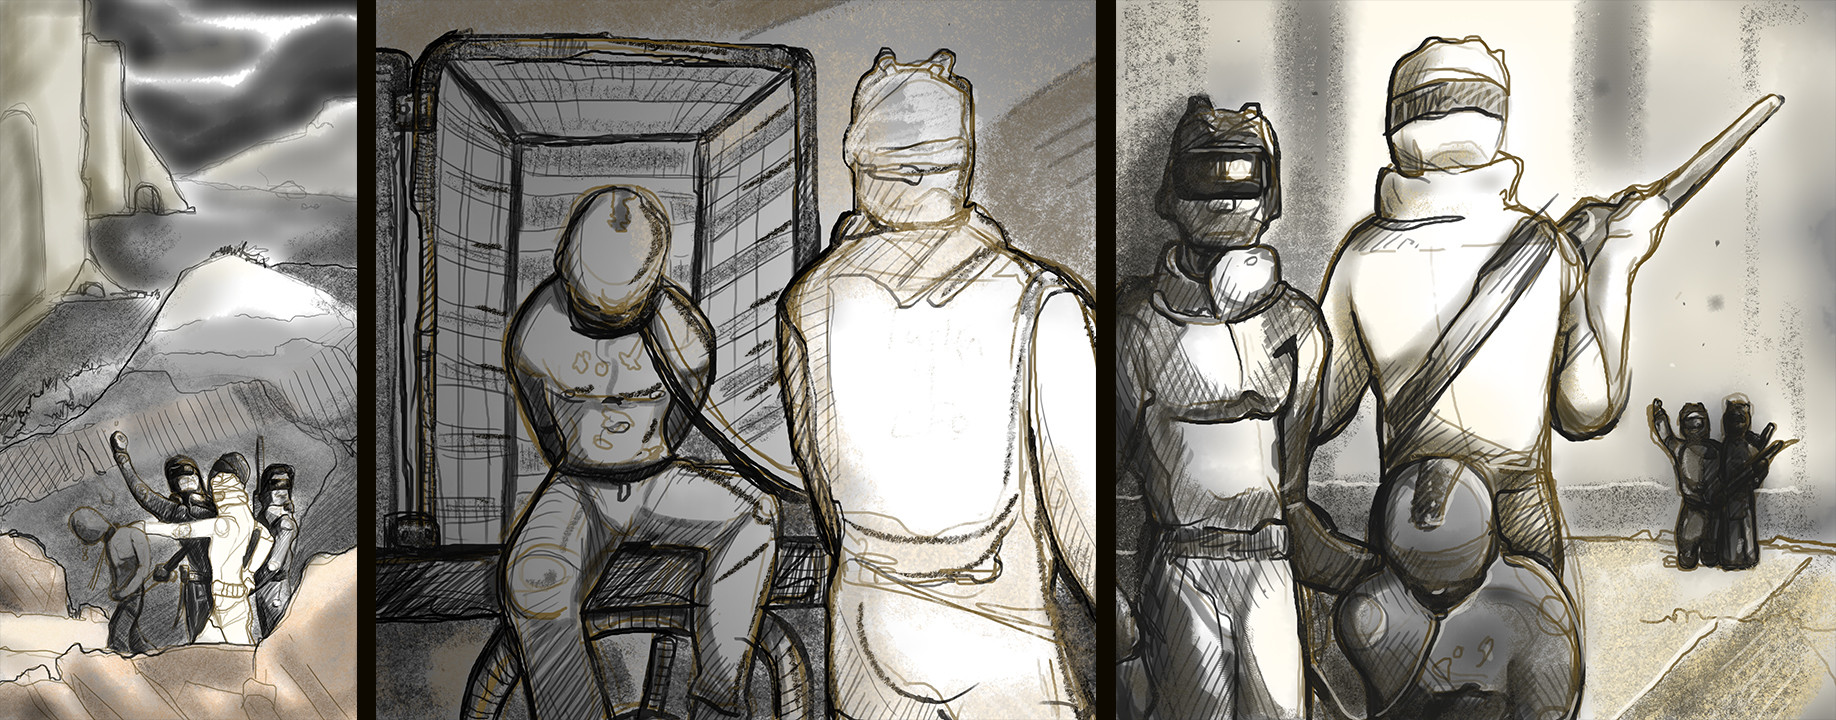 "Panel concepts for the comic ""Zombtopia"""